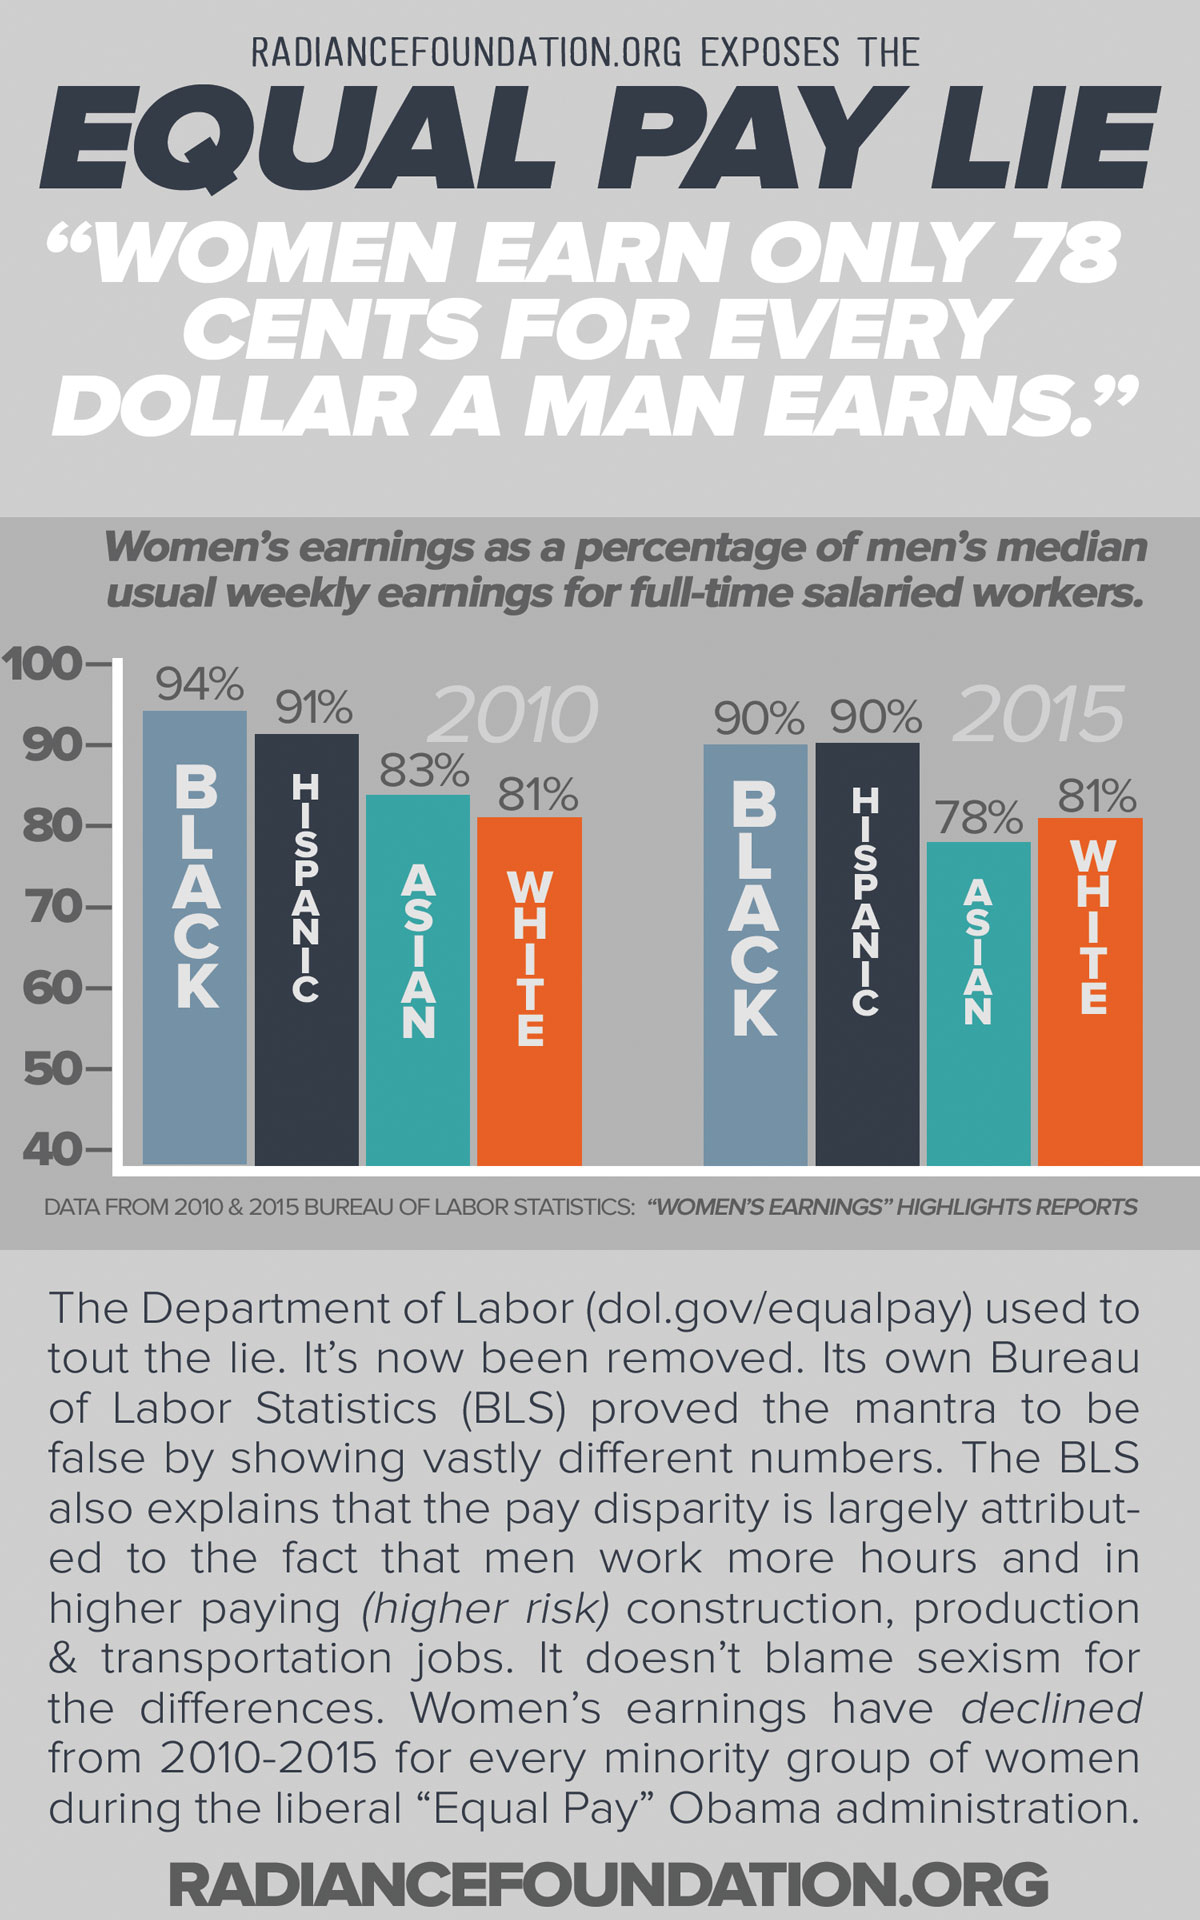 The Myth of Equal Pay